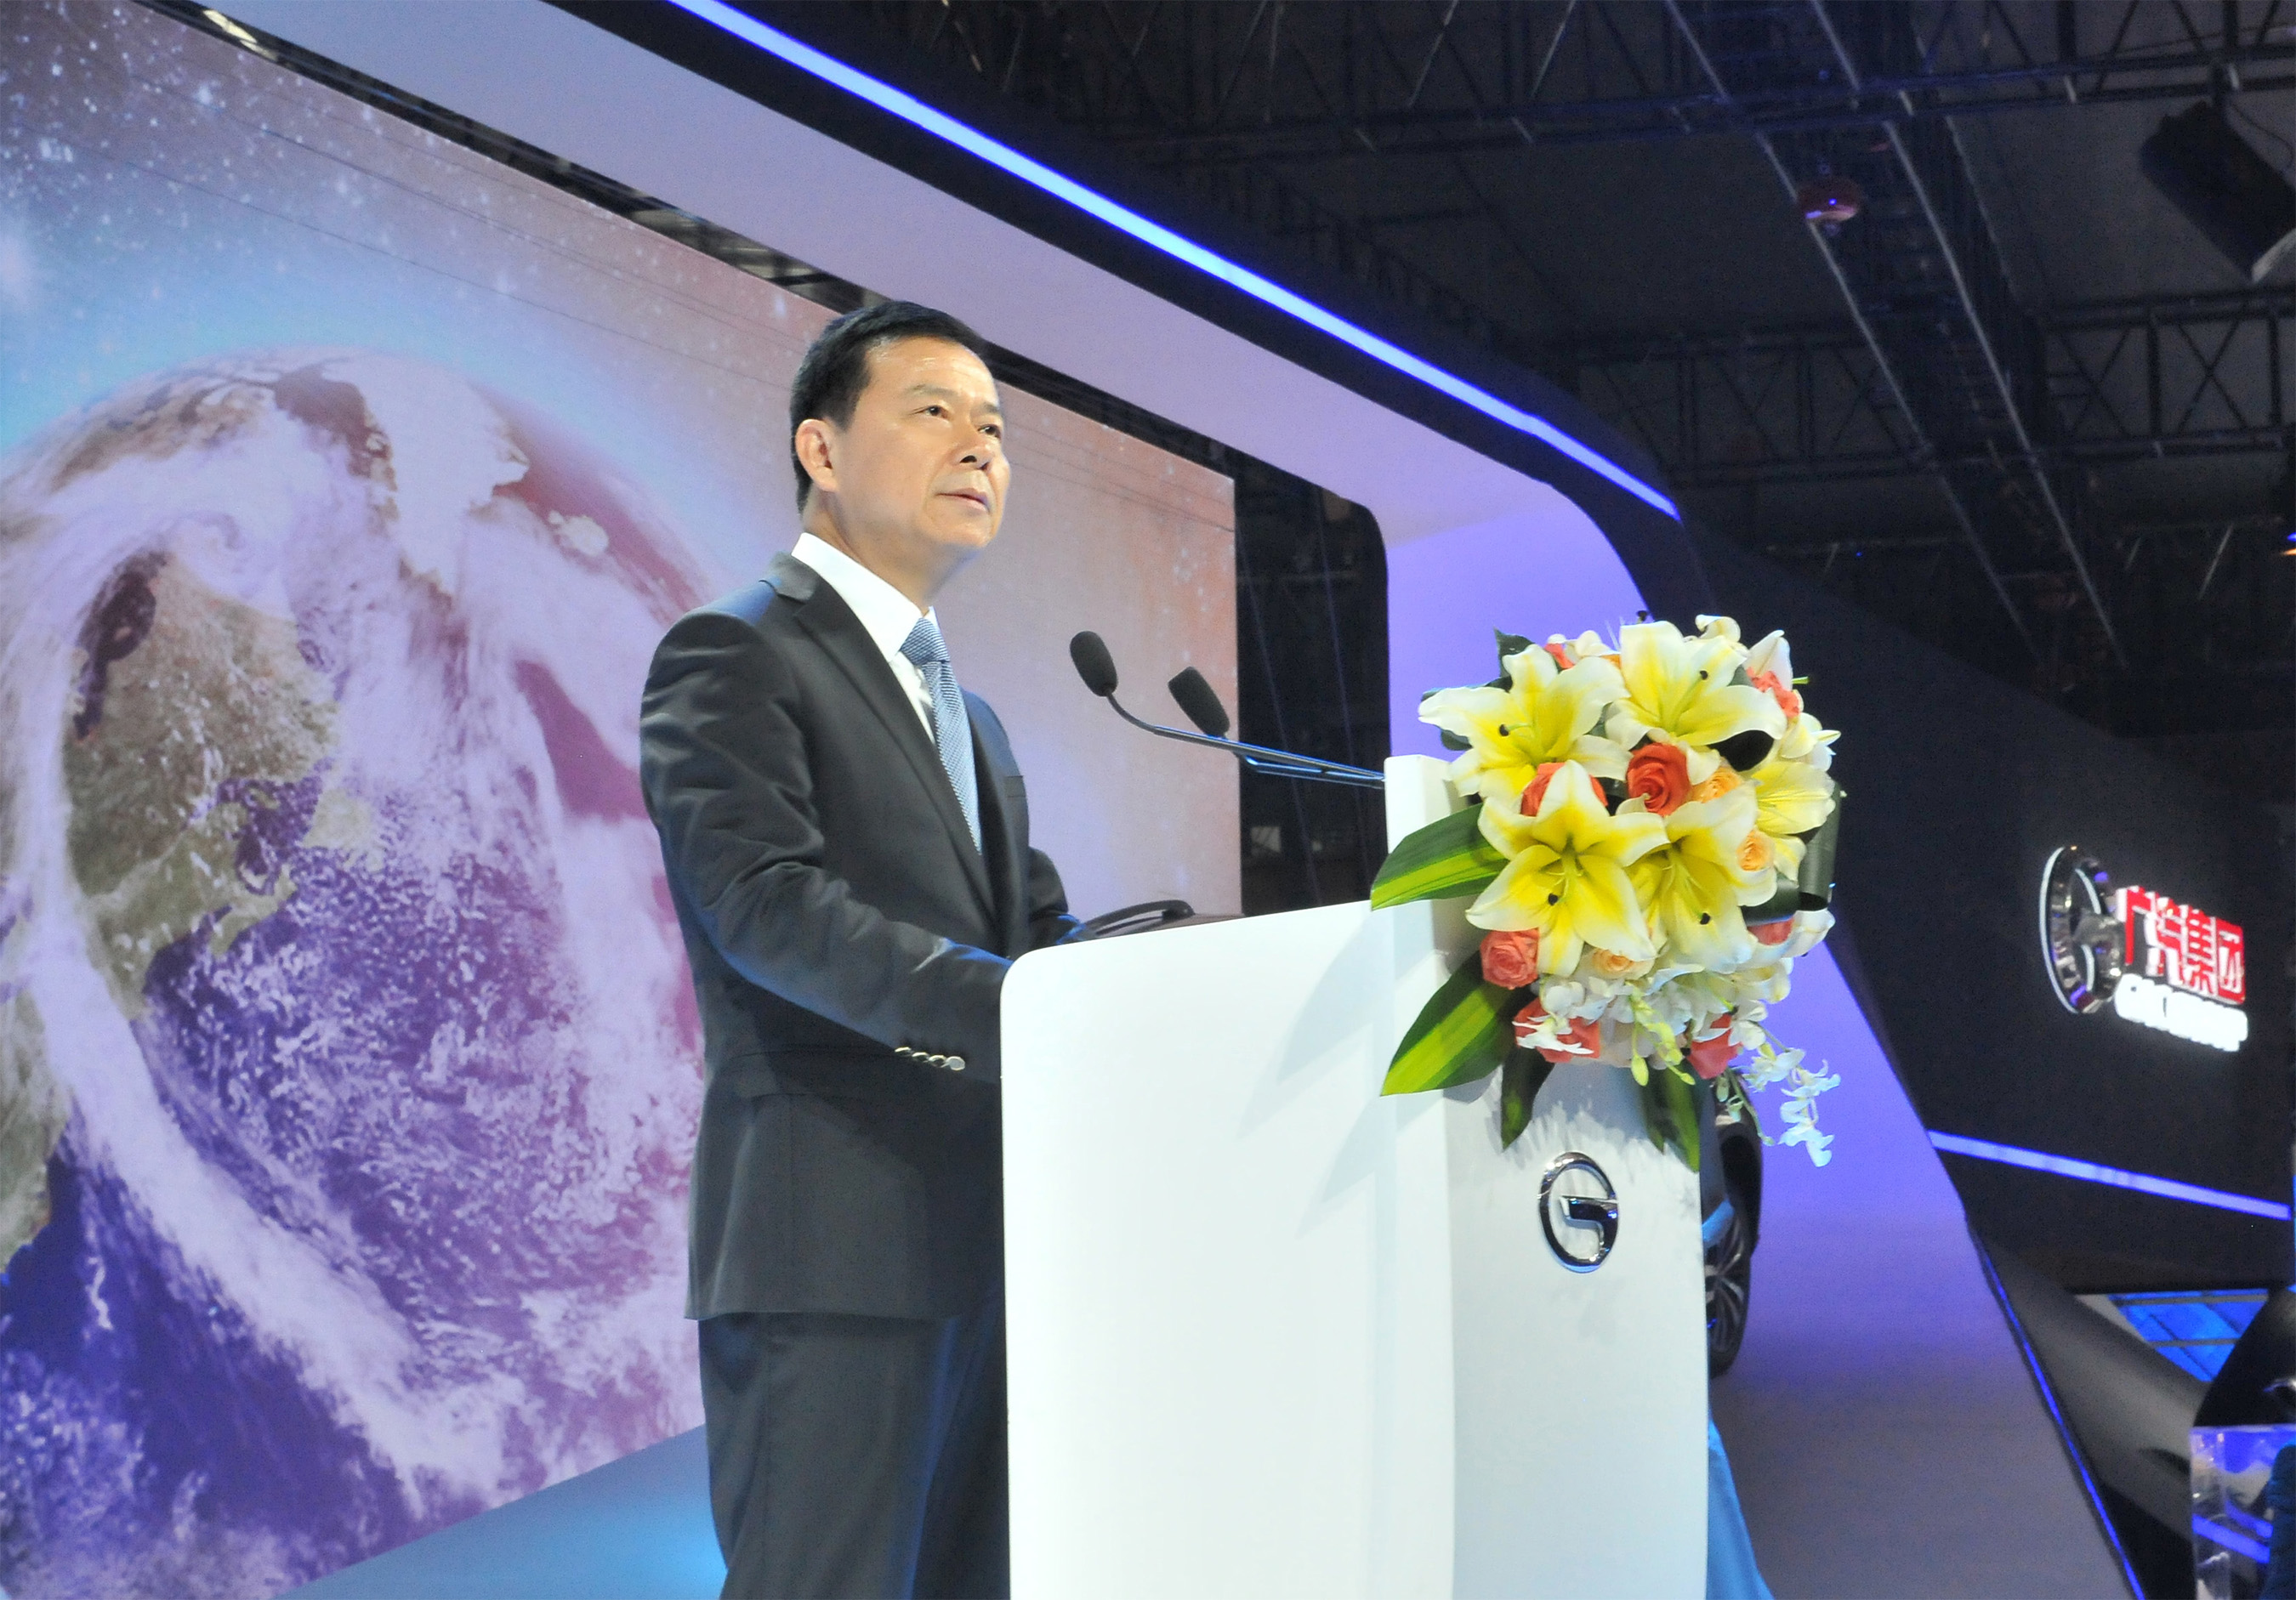 Zeng Qinghong, president of GAC Motor gave his speech at Guangzhou Auto Show